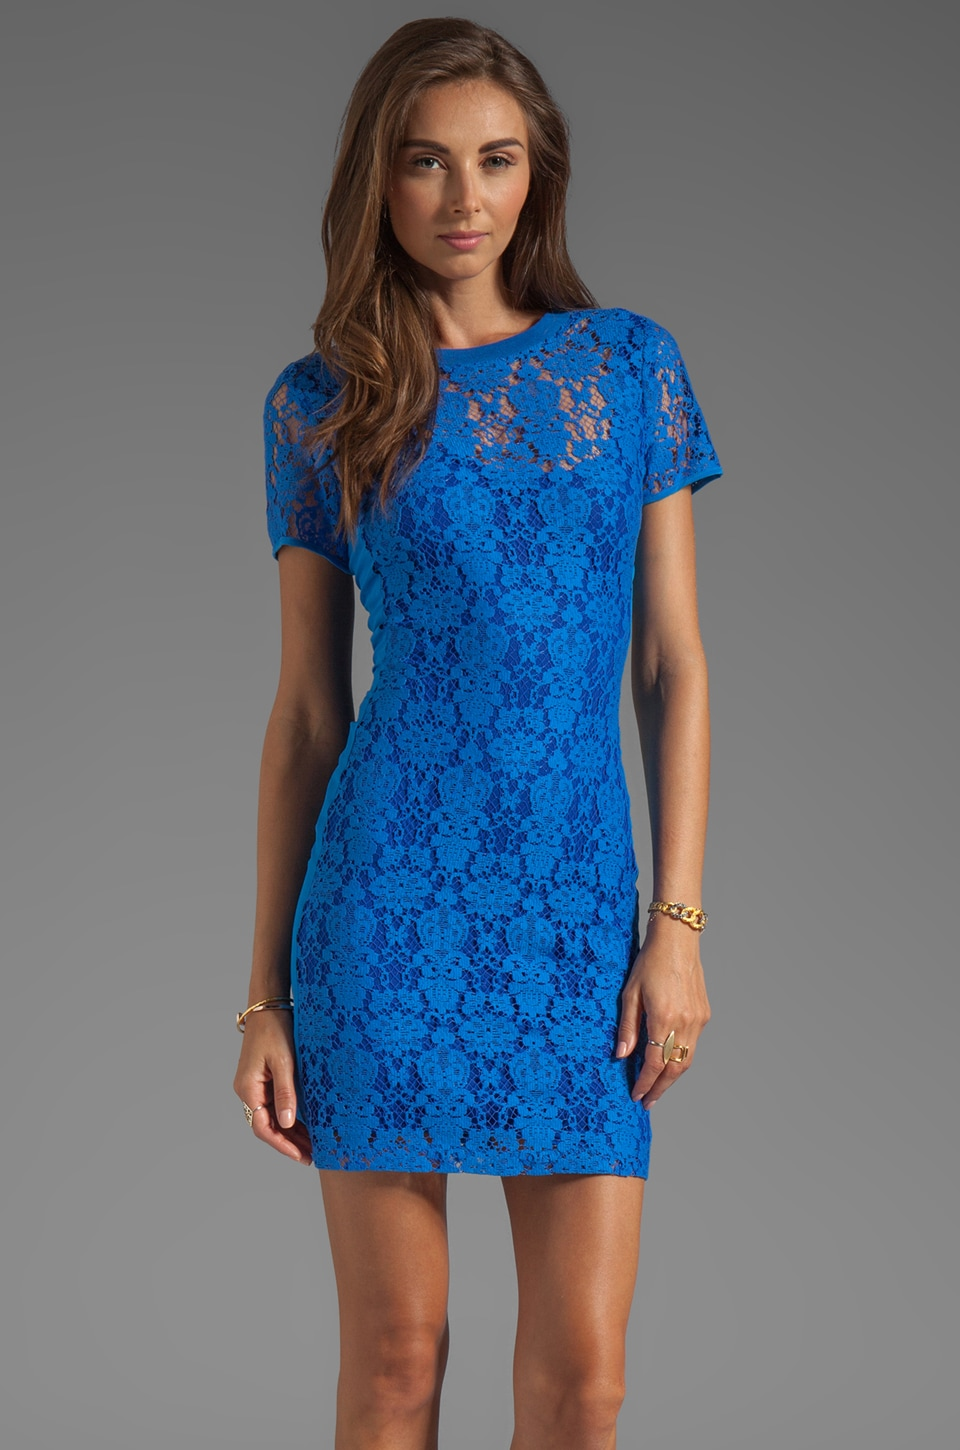 Rebecca Taylor Lace Dress in Bright Blue